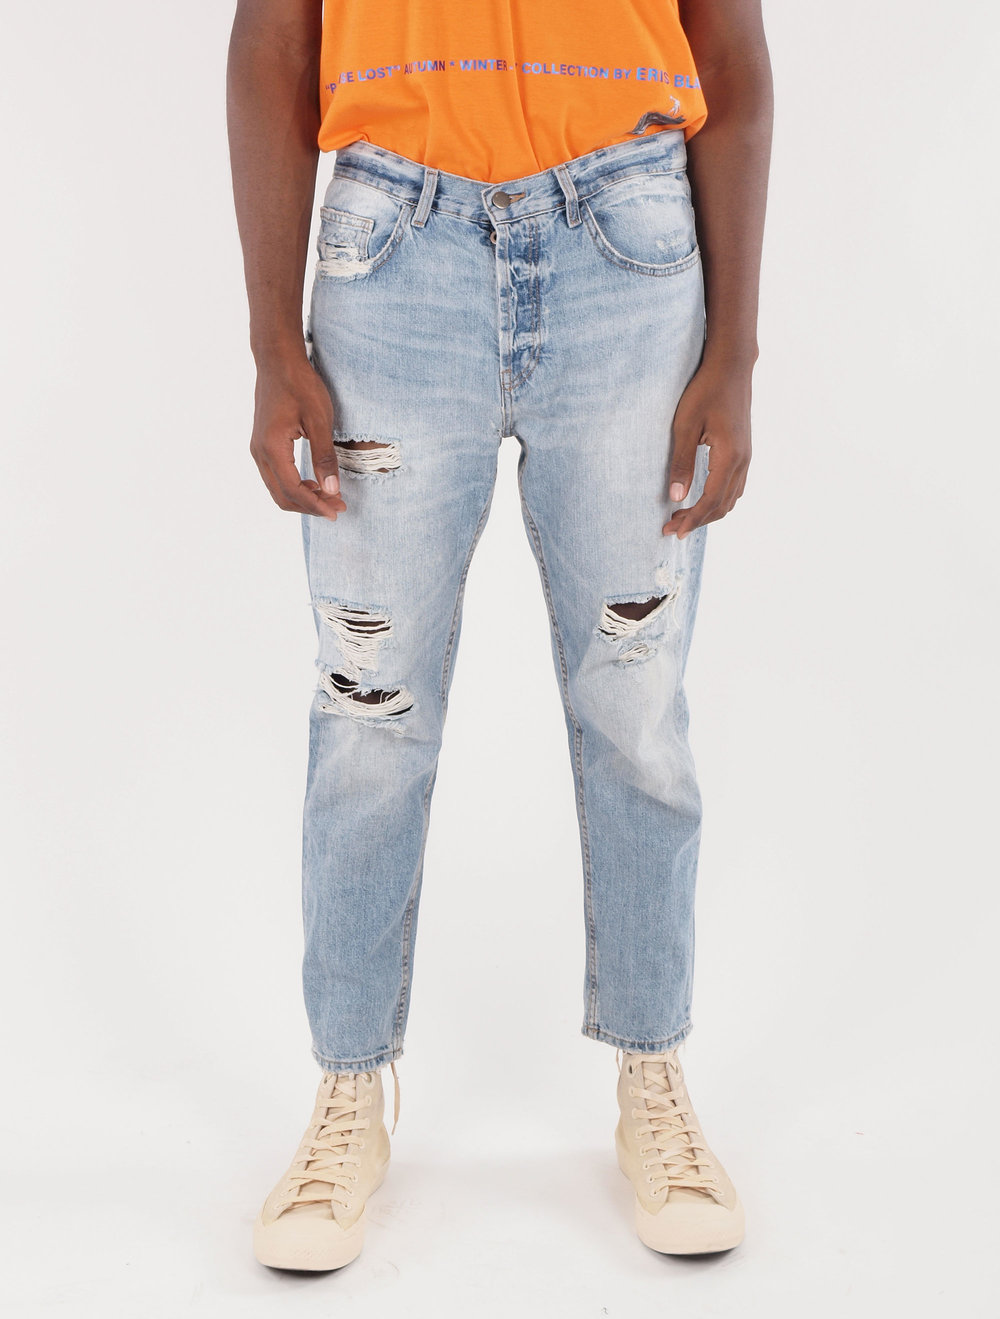 heavy-wash-jeans.jpg